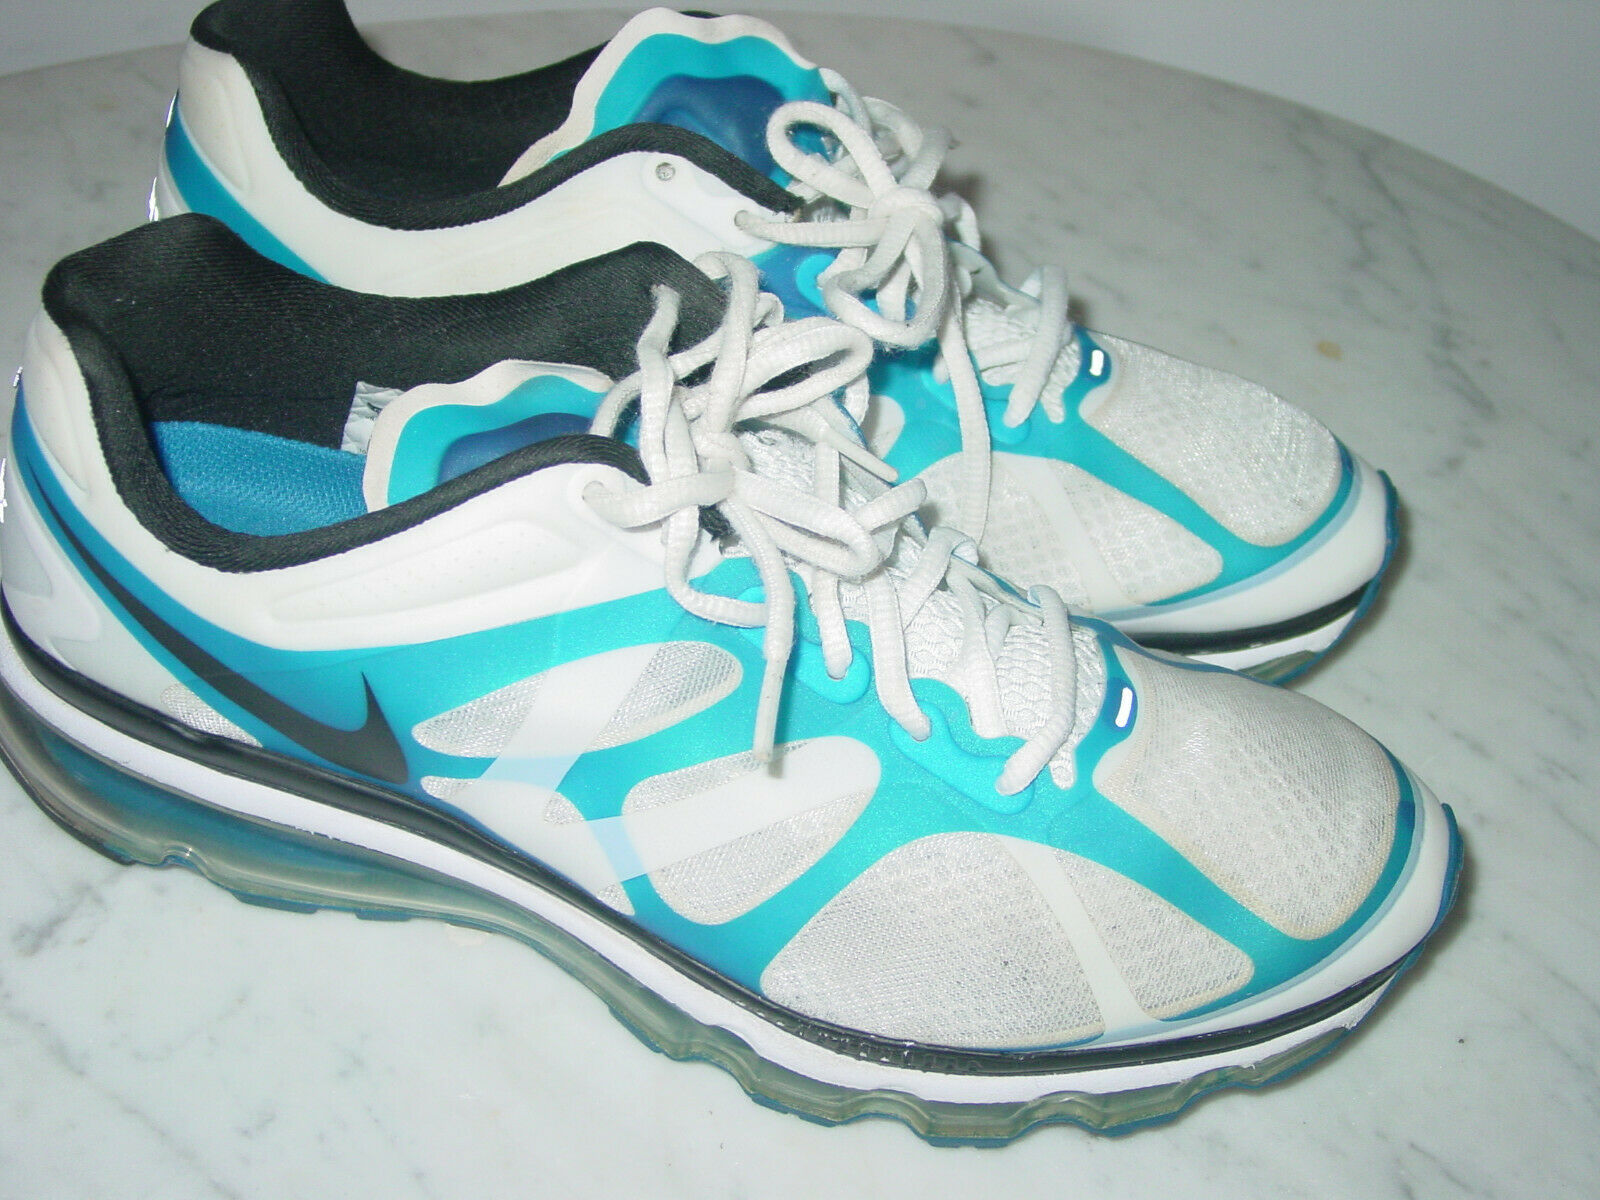 2011 Nike Air Max+ 2012 White Black bluee Spark Running shoes  Size 11